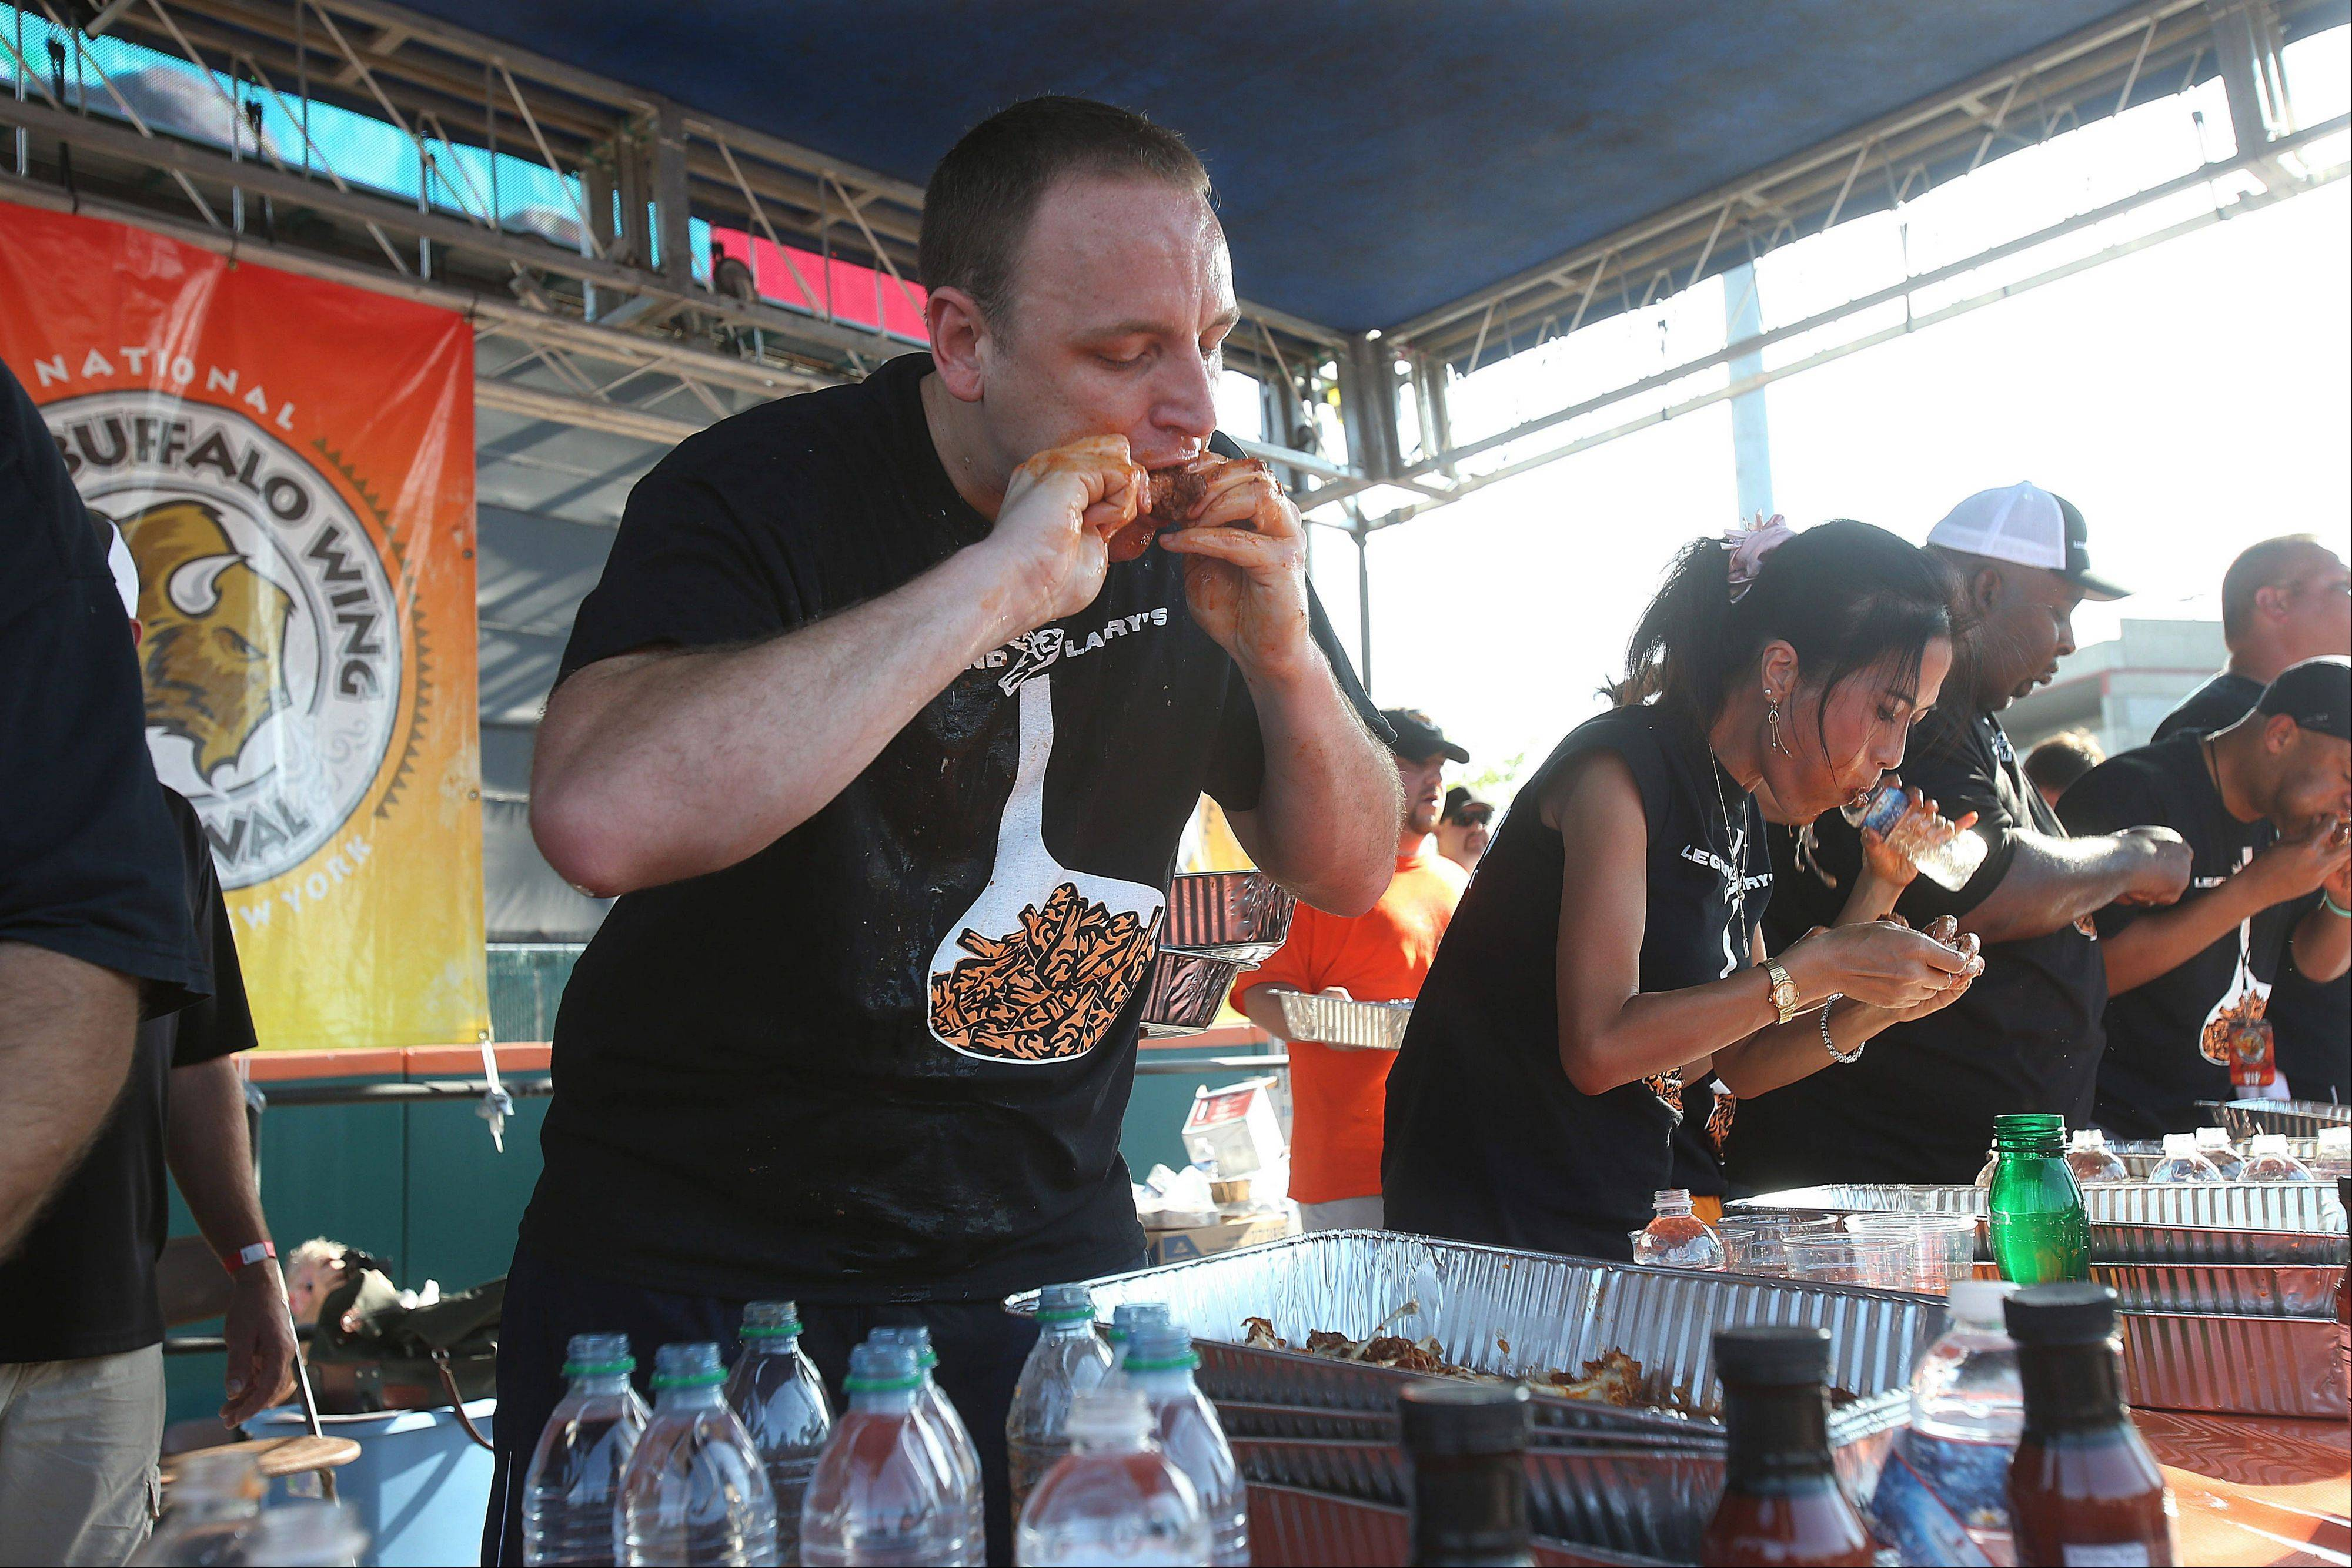 Competitive eater Joey Chestnut devours a chicken wing, on his way to eating a record 191 wings in 12 minutes, at the National Buffalo Wing Festival on Sunday in Buffalo, N.Y.